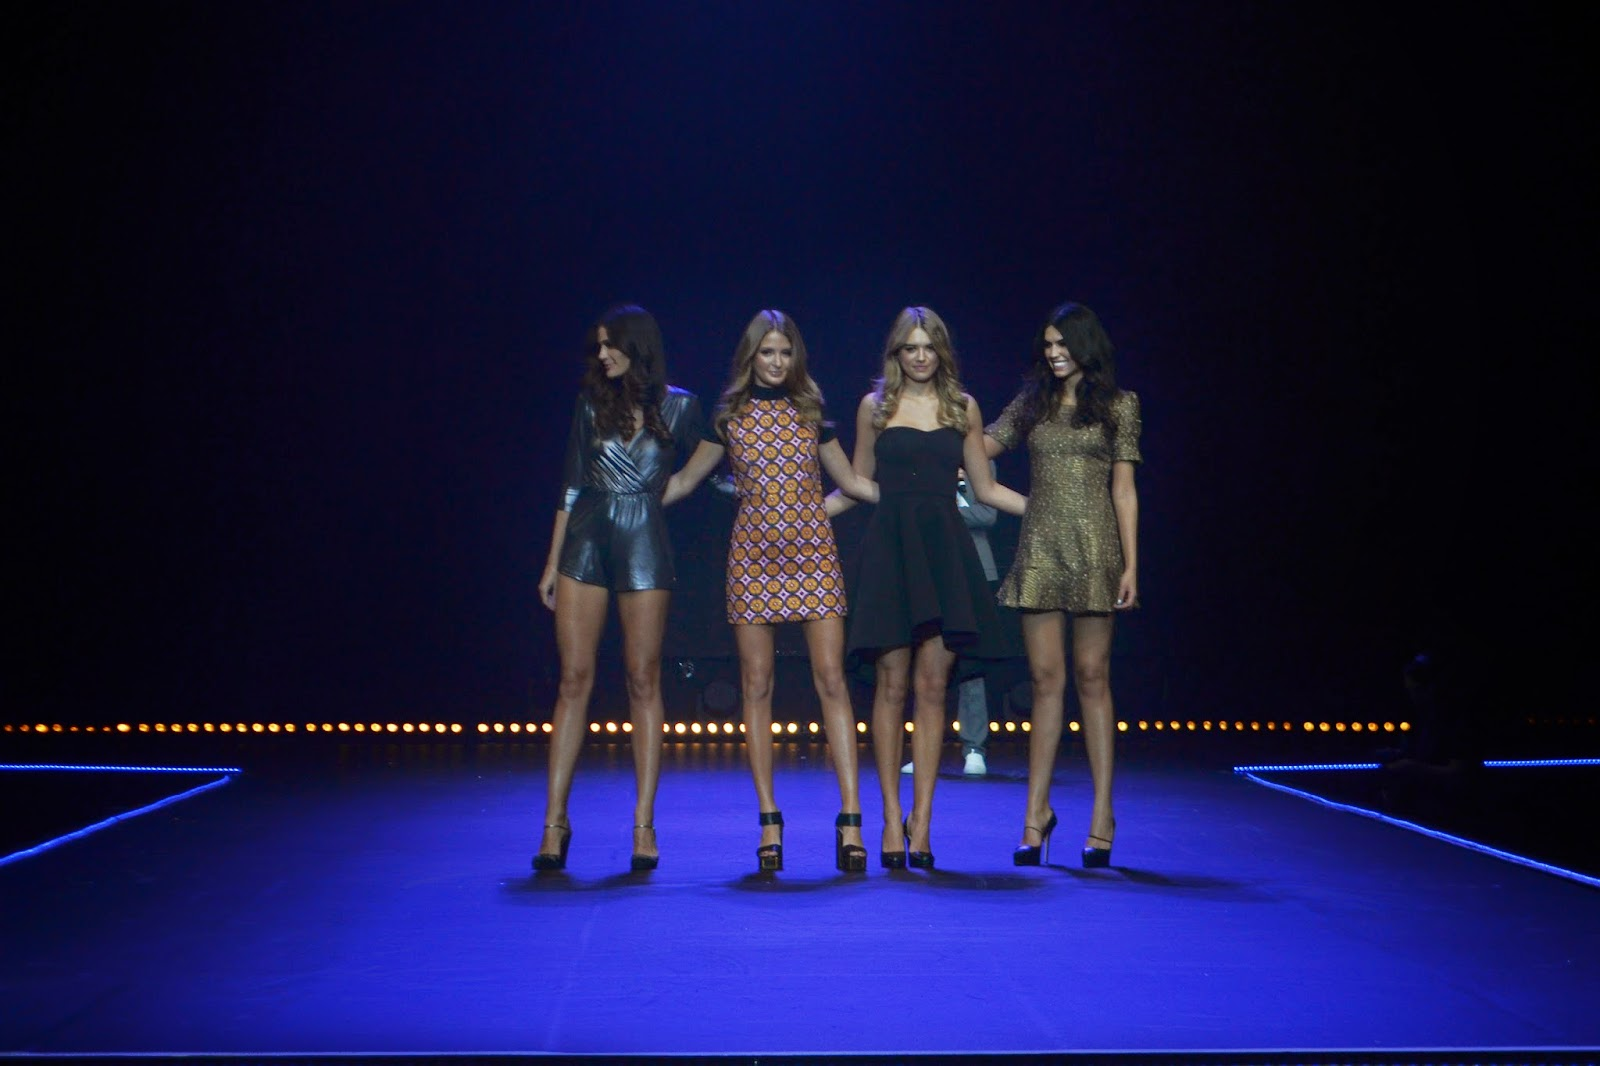 4 models on stage